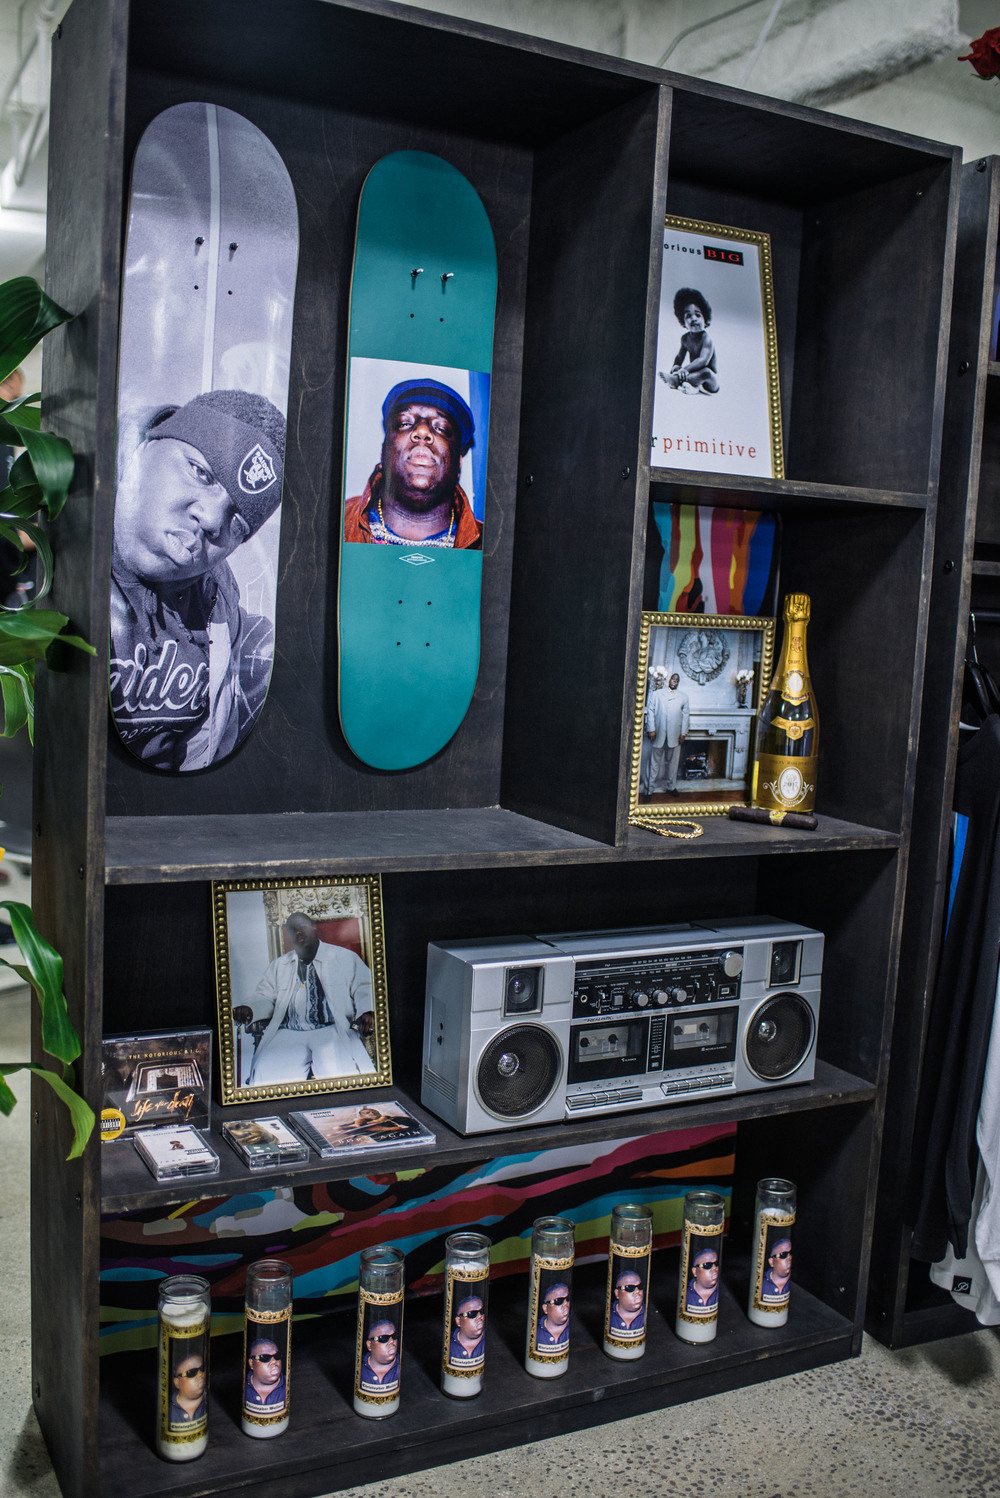 Biggie shrine at Primitive Apparel booth at LA Men's Market at CMC. / Photo: © Diane Abapo for SUSPEND Magazine